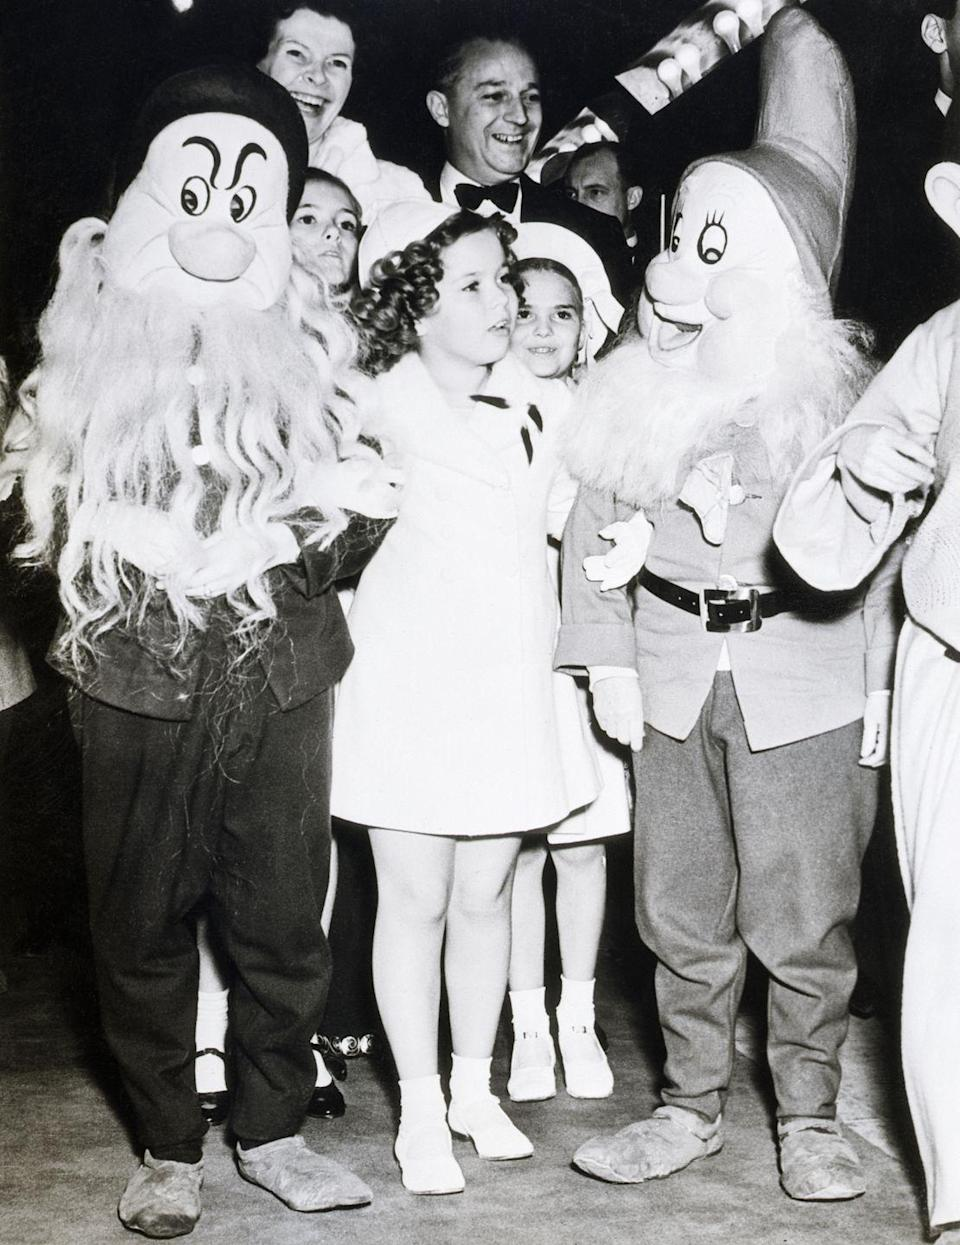 <p>Child film star Shirley Temple poses with two of the Seven Dwarfs at the 1937 premiere of Walt Disney's <em>Snow White and the Seven Dwarfs</em>. In order to preserve the illusion of Snow White, Adriana Caselotti (who voiced the character at 19 years old) was never allowed to use her voice in any other film or radio show following the film's release.</p>